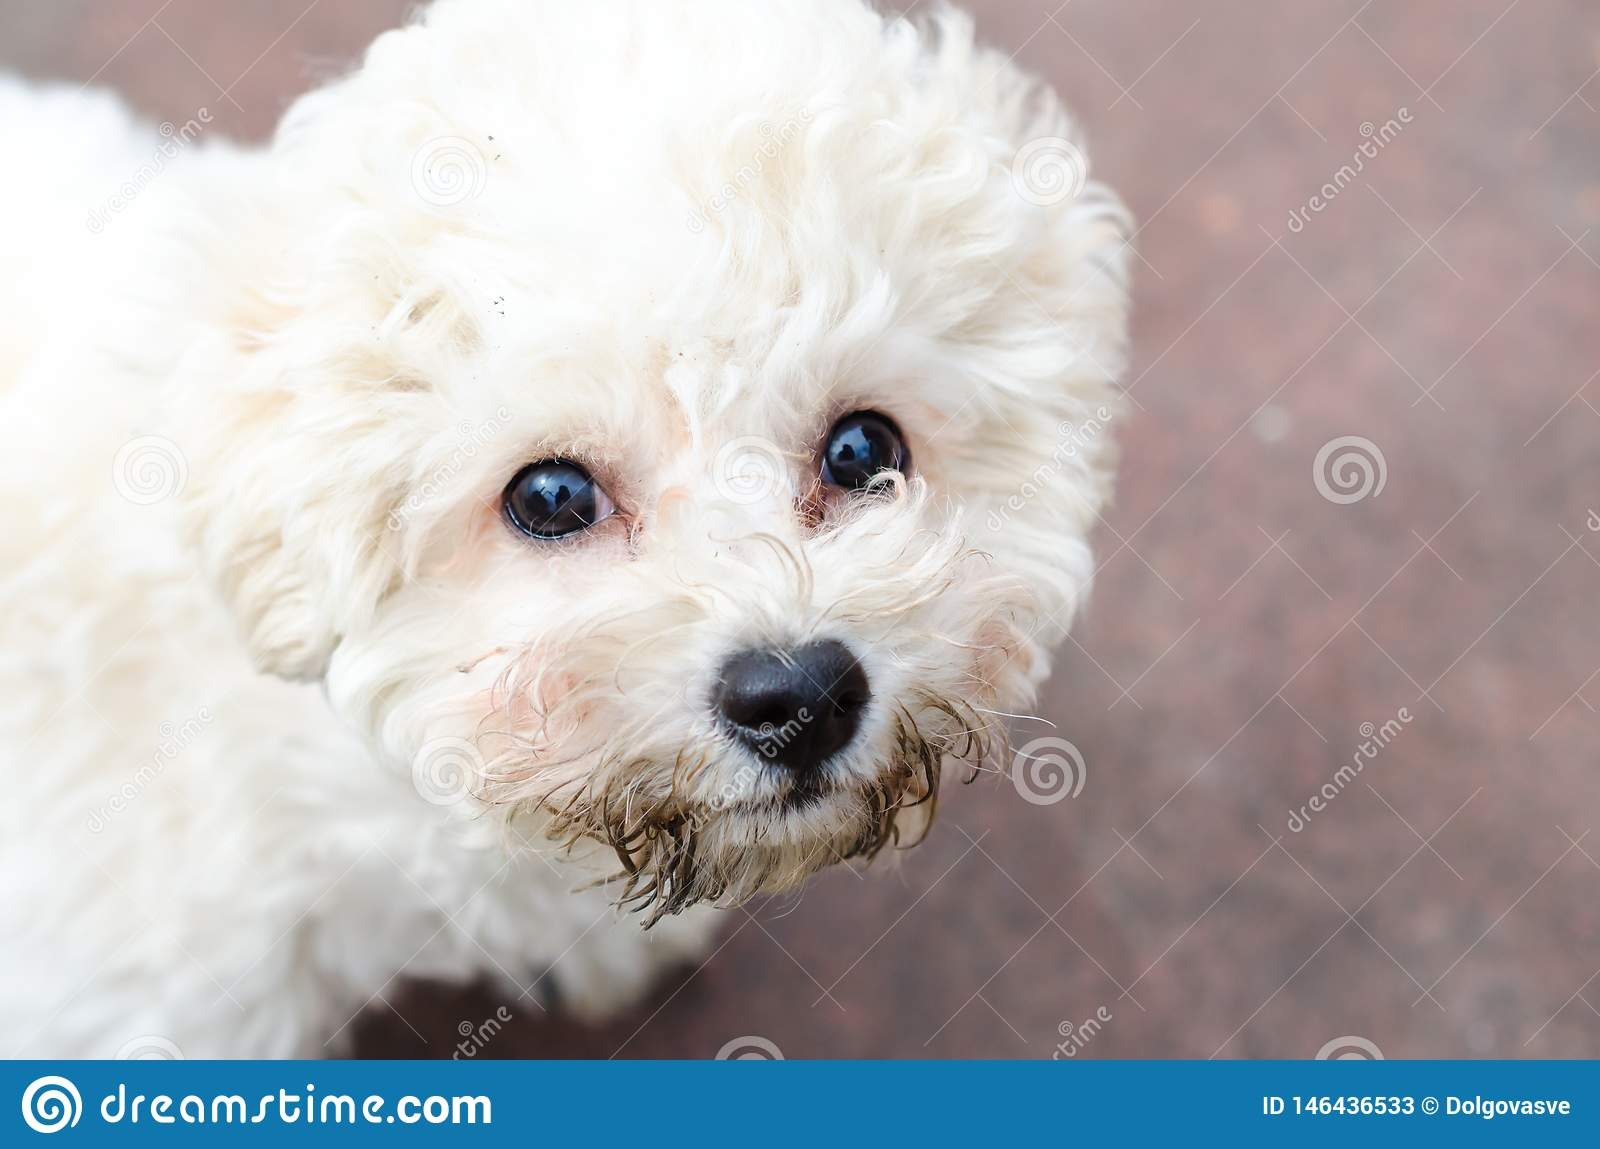 Curly Puppy Of Bichon Frise Stock Image - Image of friend